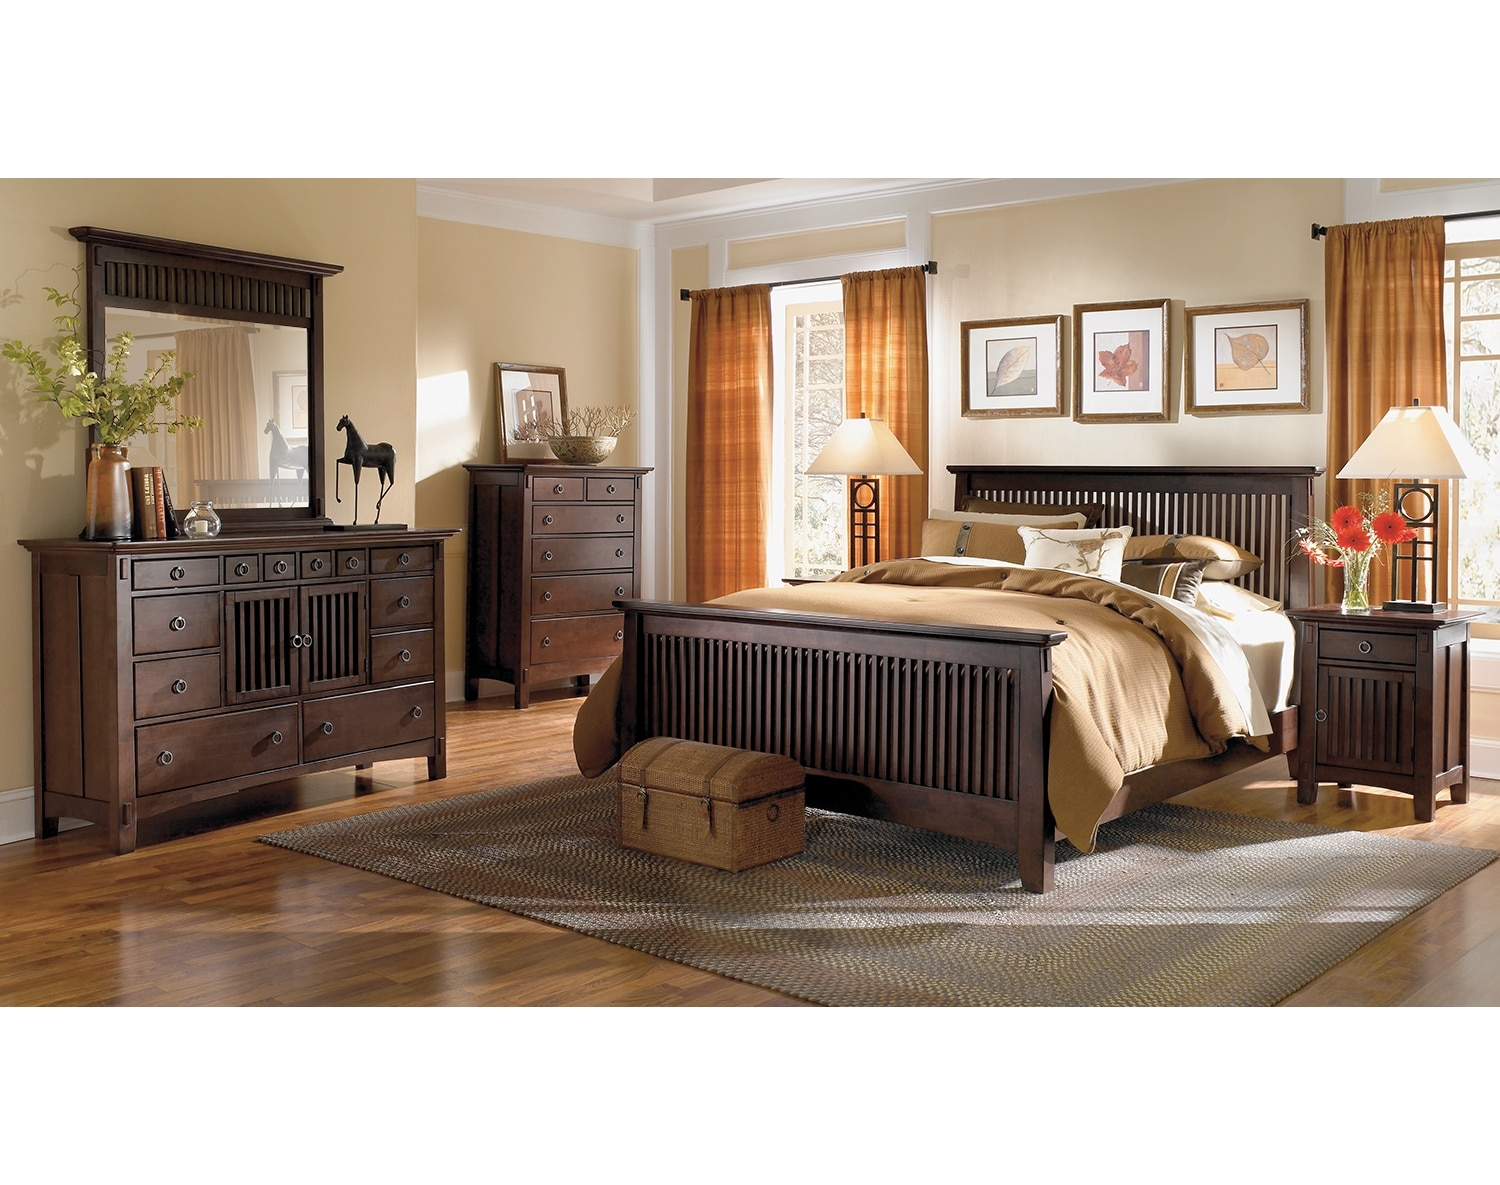 Bedroom Furniture - The Wentworth Dark Collection - Queen Bed